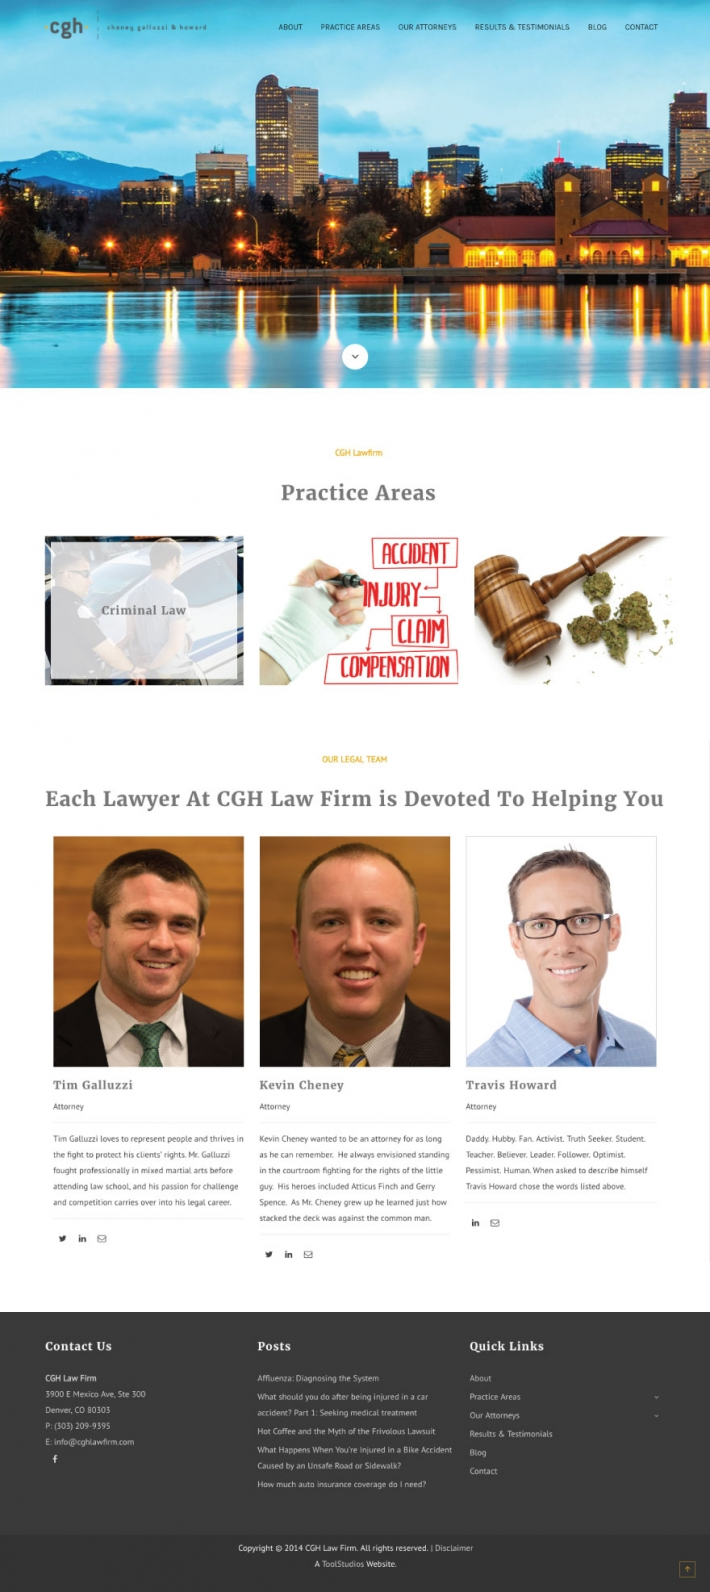 CGH Law Firm